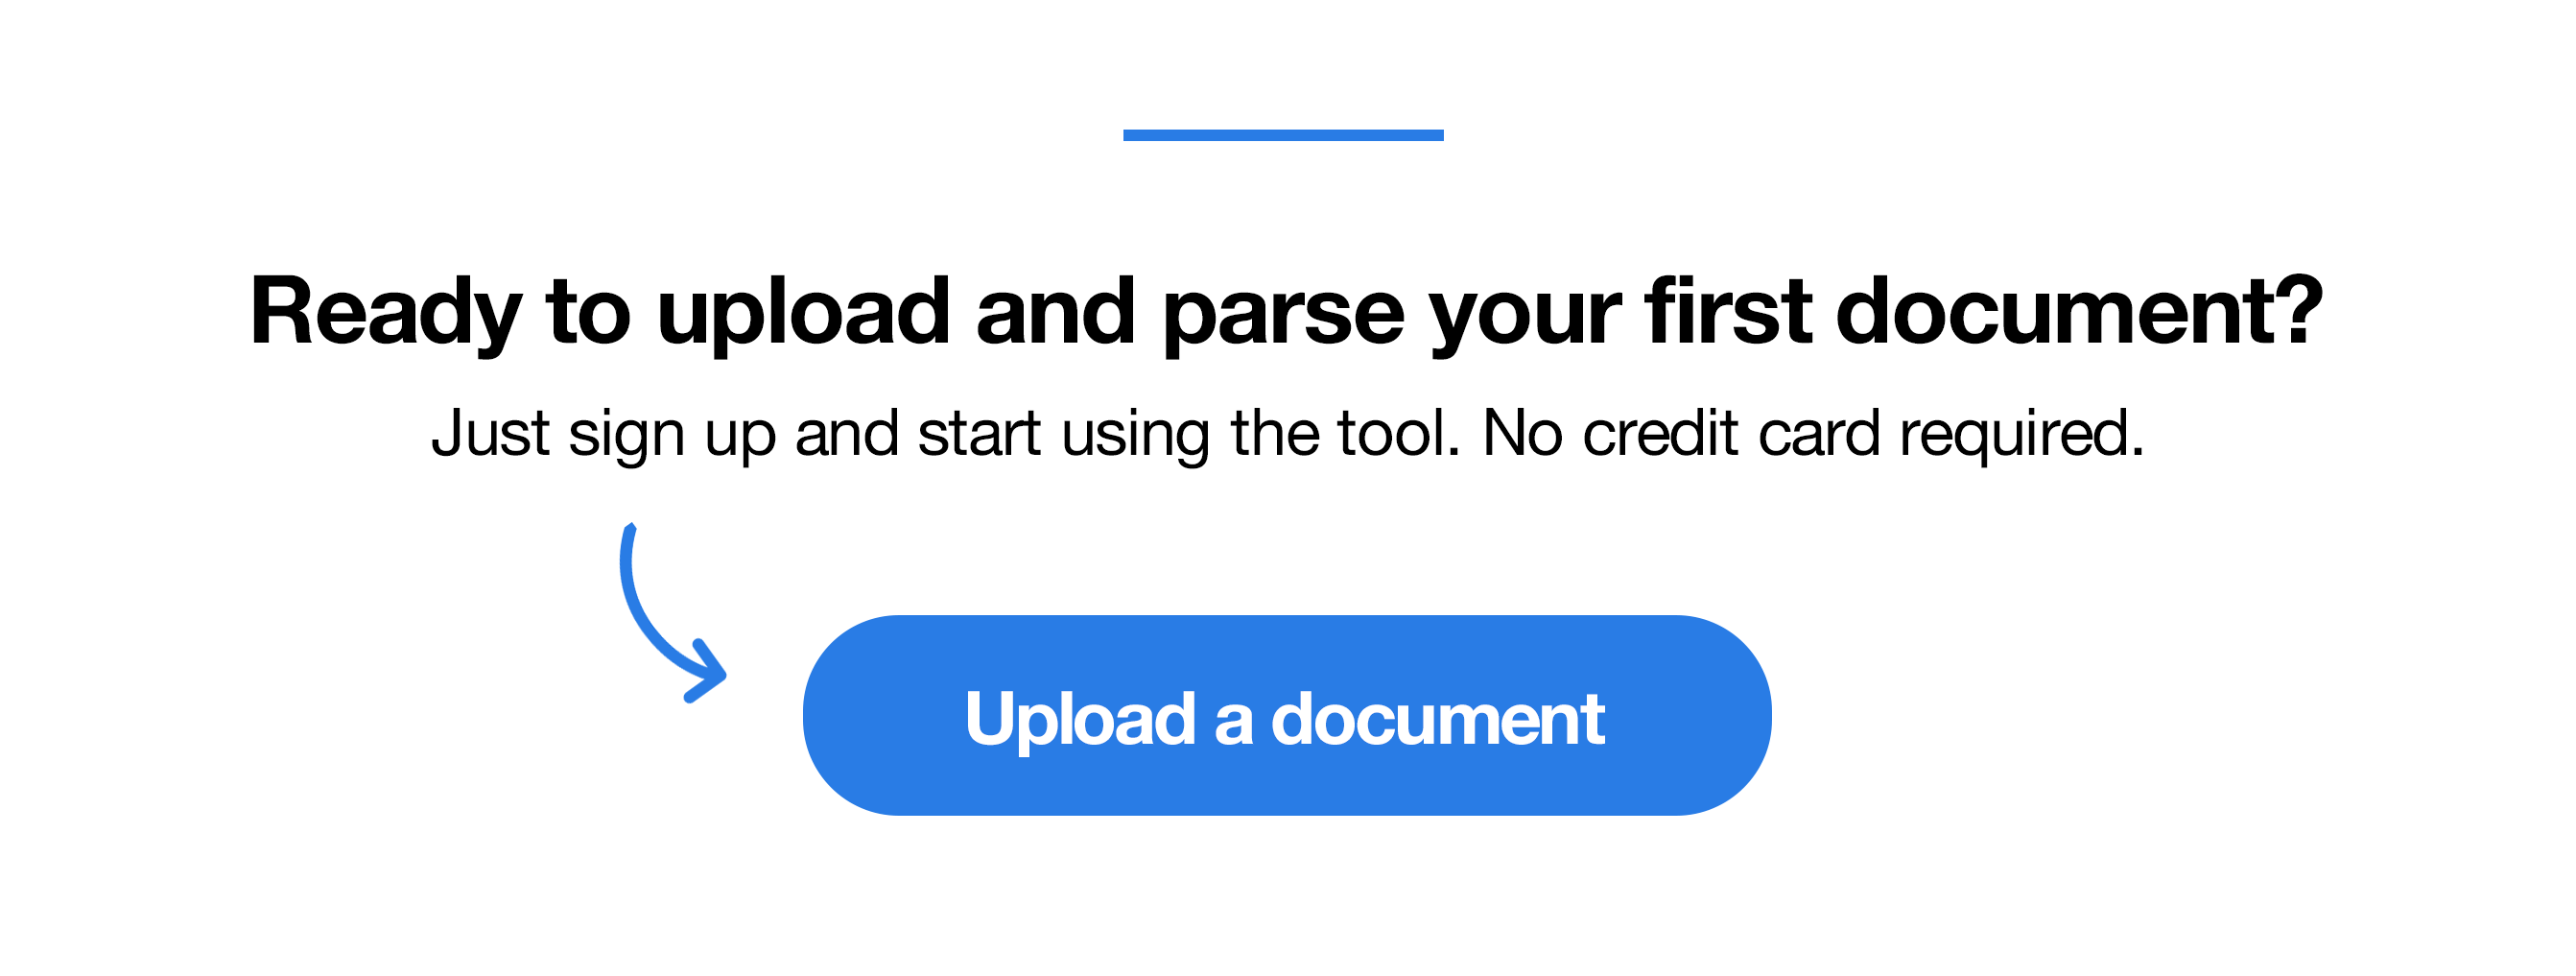 Parse your first document